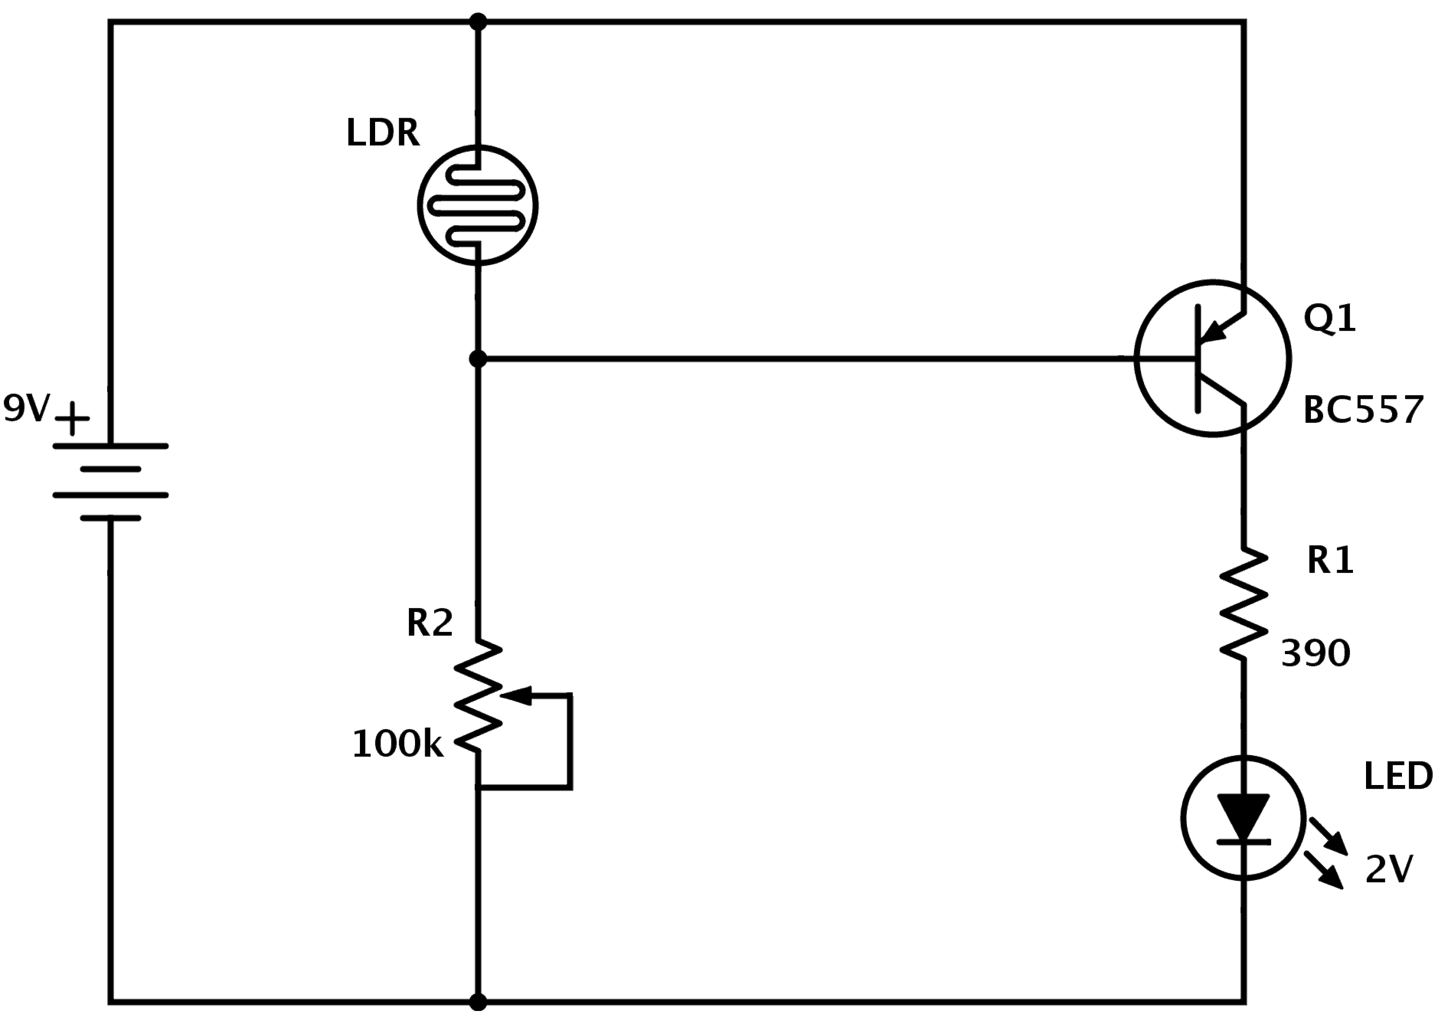 Ldr Circuit Diagram Build Electronic Circuits Electronics Diagrams Archive Free Projects For Hobbyists With Pnp Transistor Dark Detector